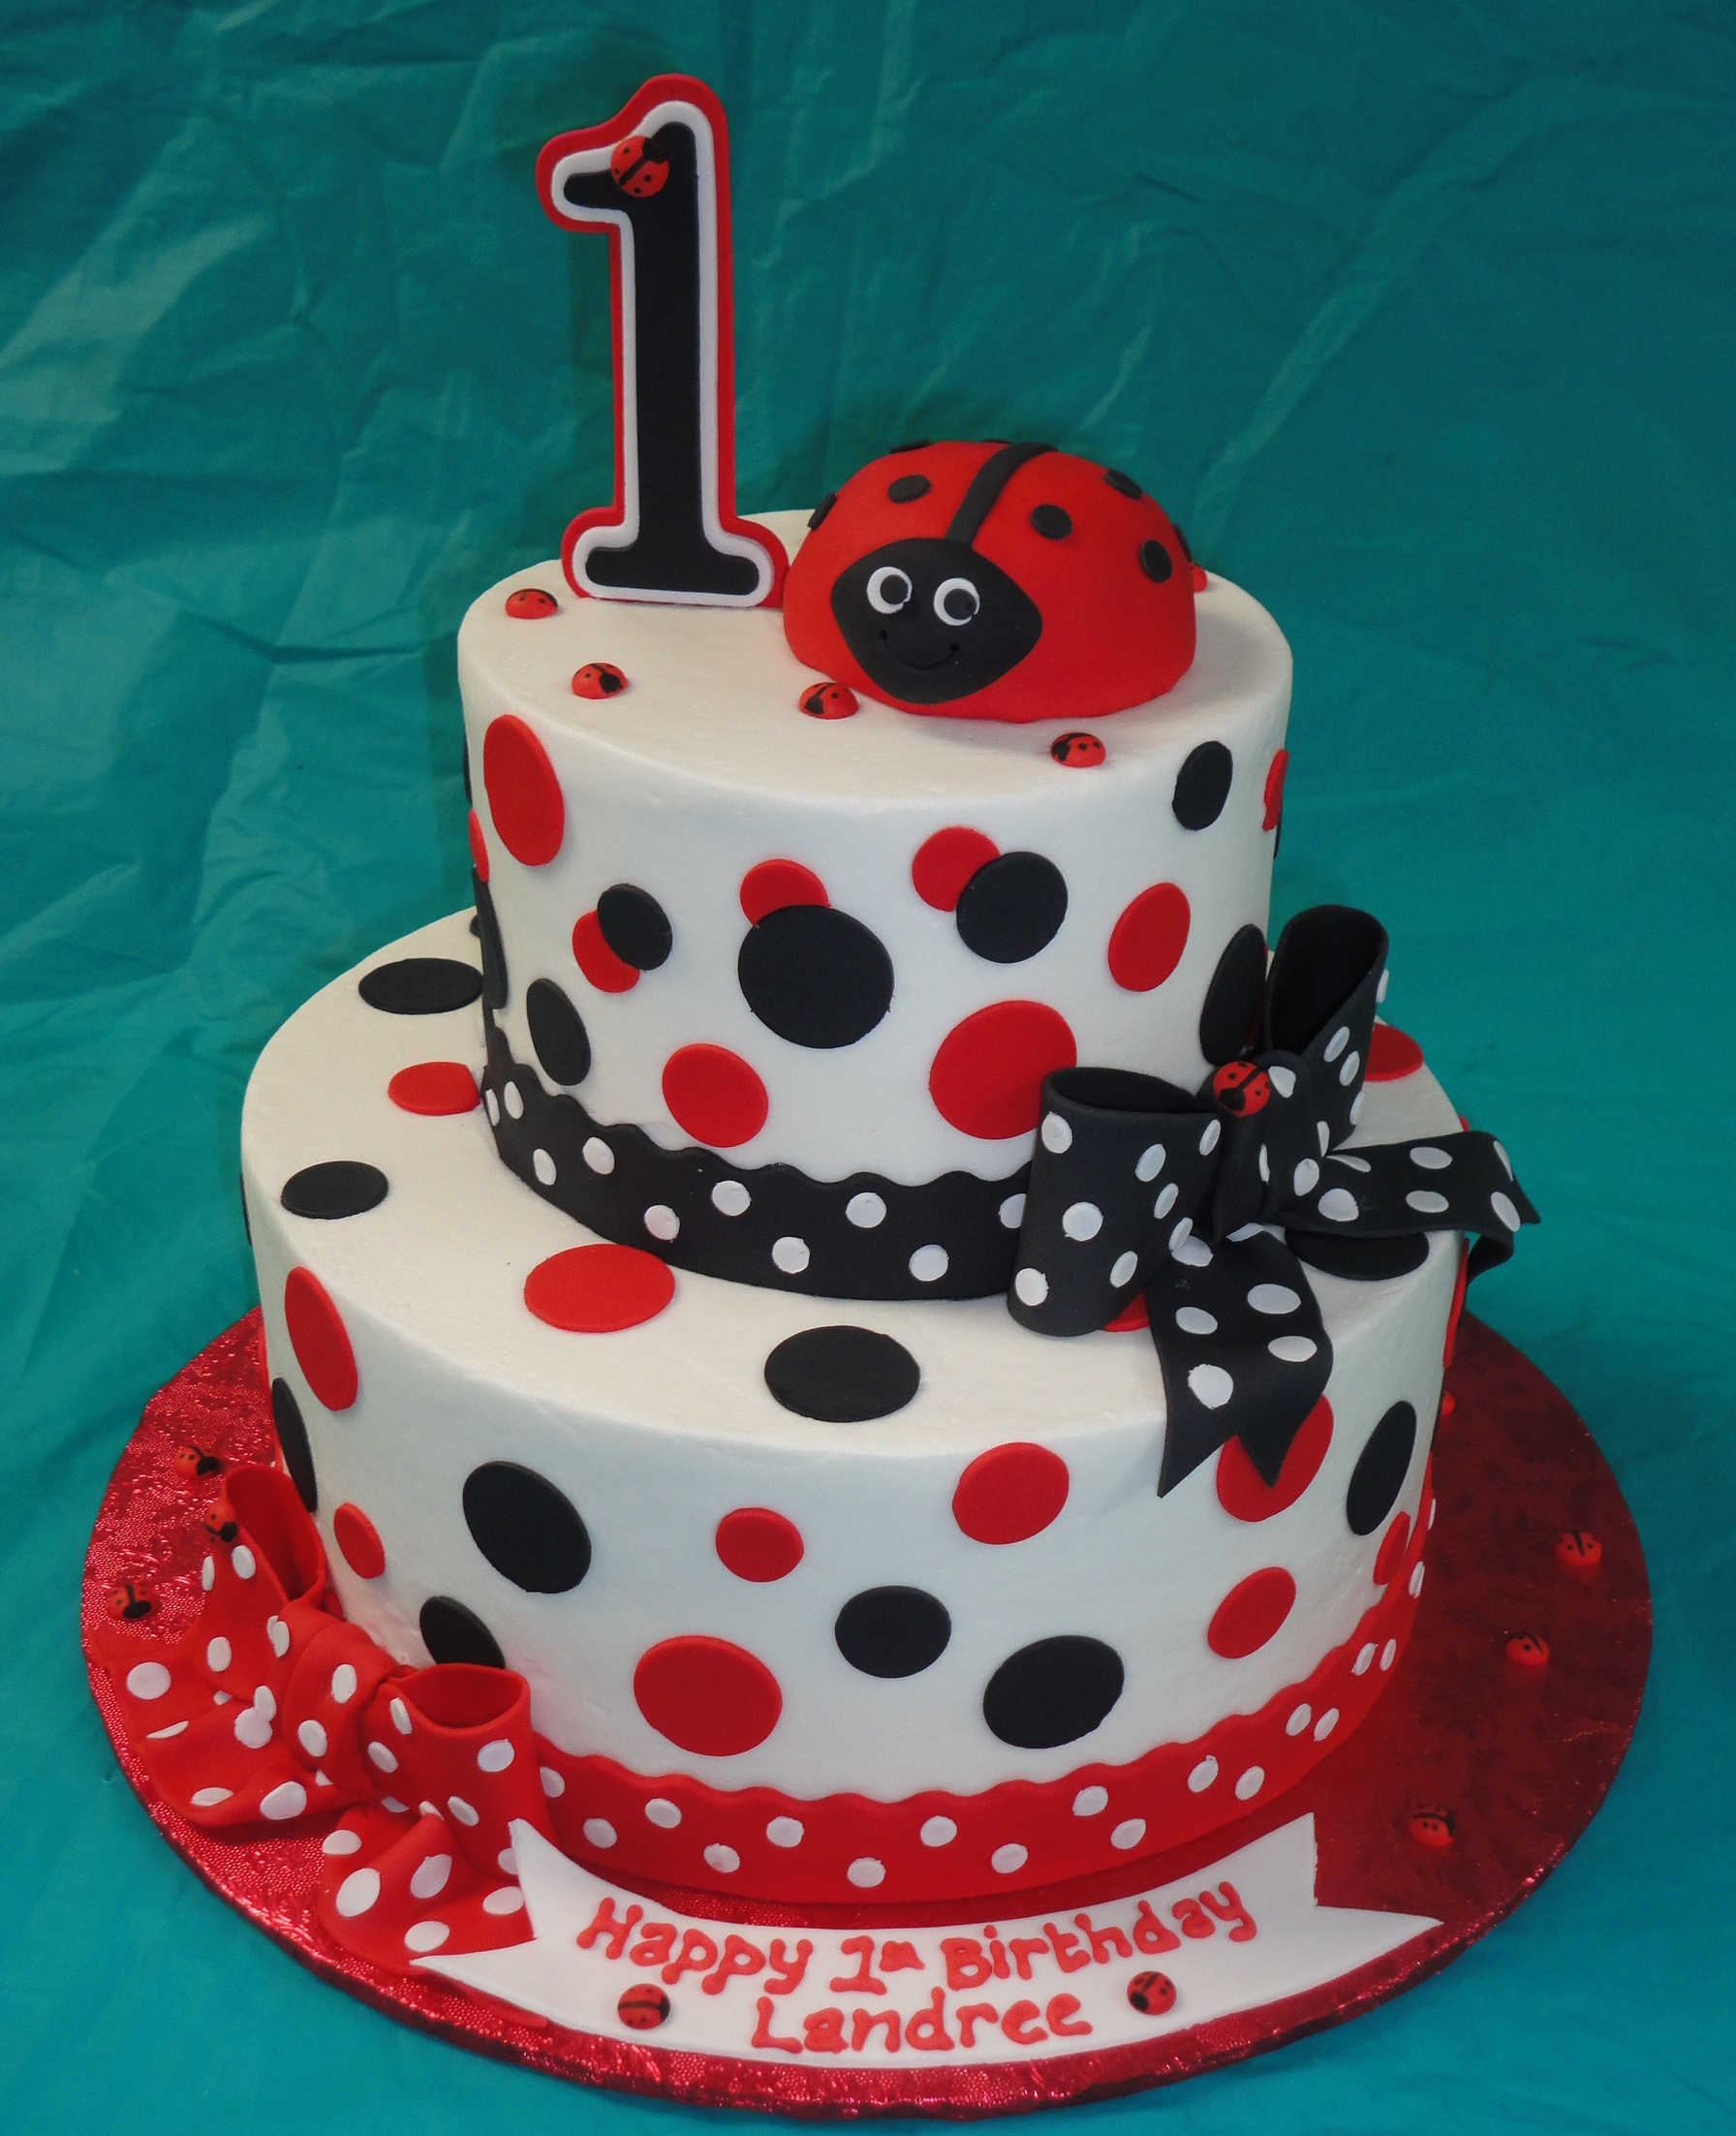 Ladybug Cakes Decoration Ideas